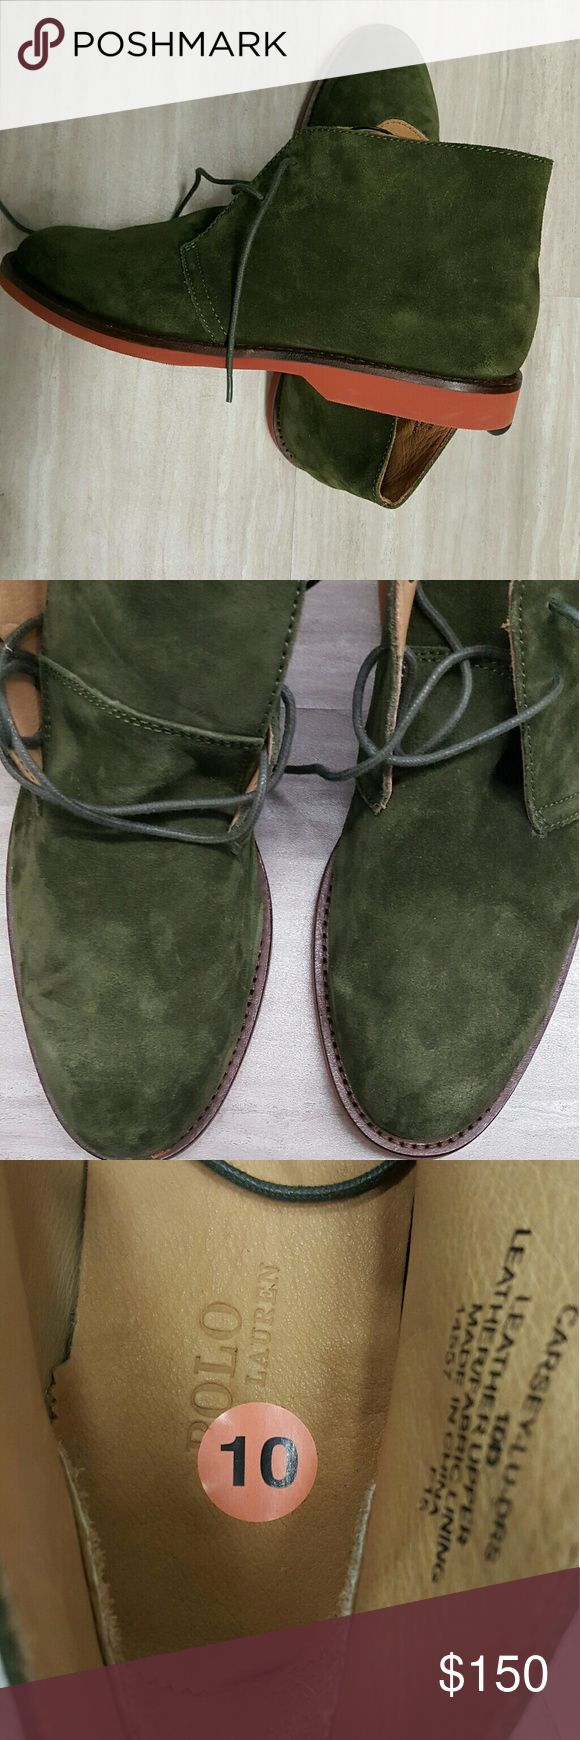 Mens Suede Chukka Polo Boot -New Never Worn Ralph Polo Boot  -Off the rack...no box -Size: 10 Polo by Ralph Lauren Shoes Chukka Boots